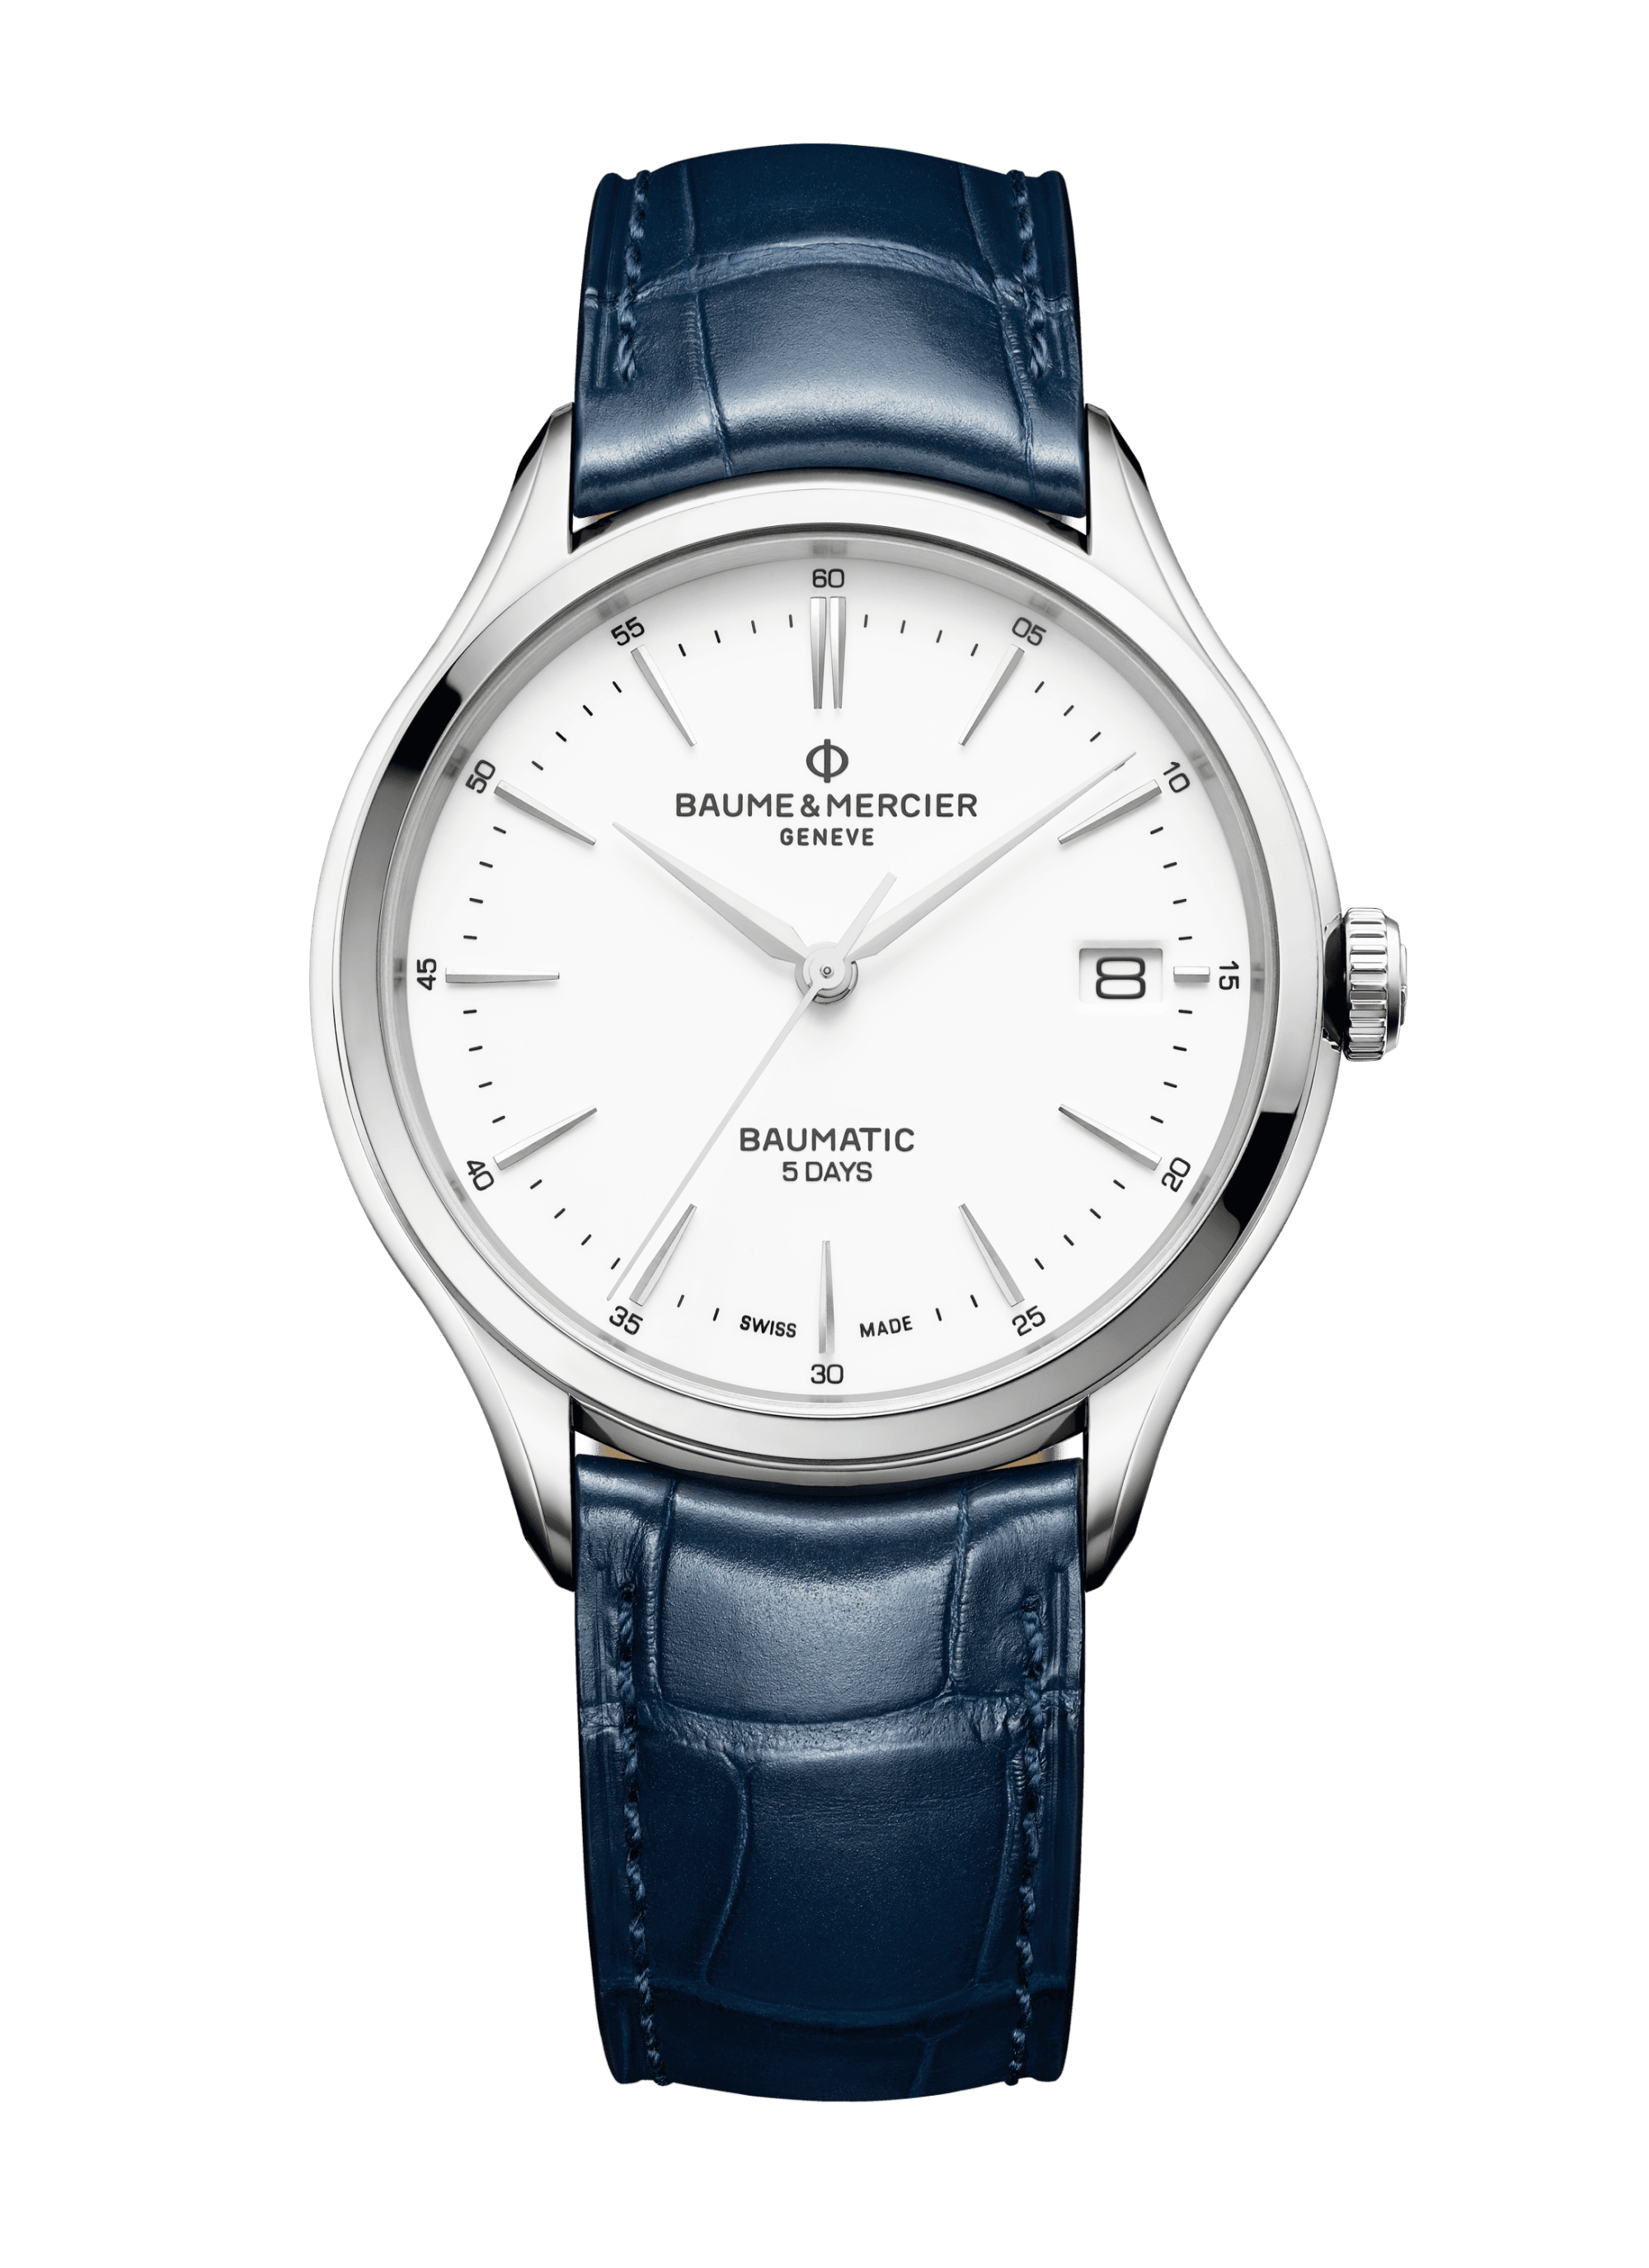 名士表(Baume & Mercier)Clifton Baumatic 10398 男士腕表 null null